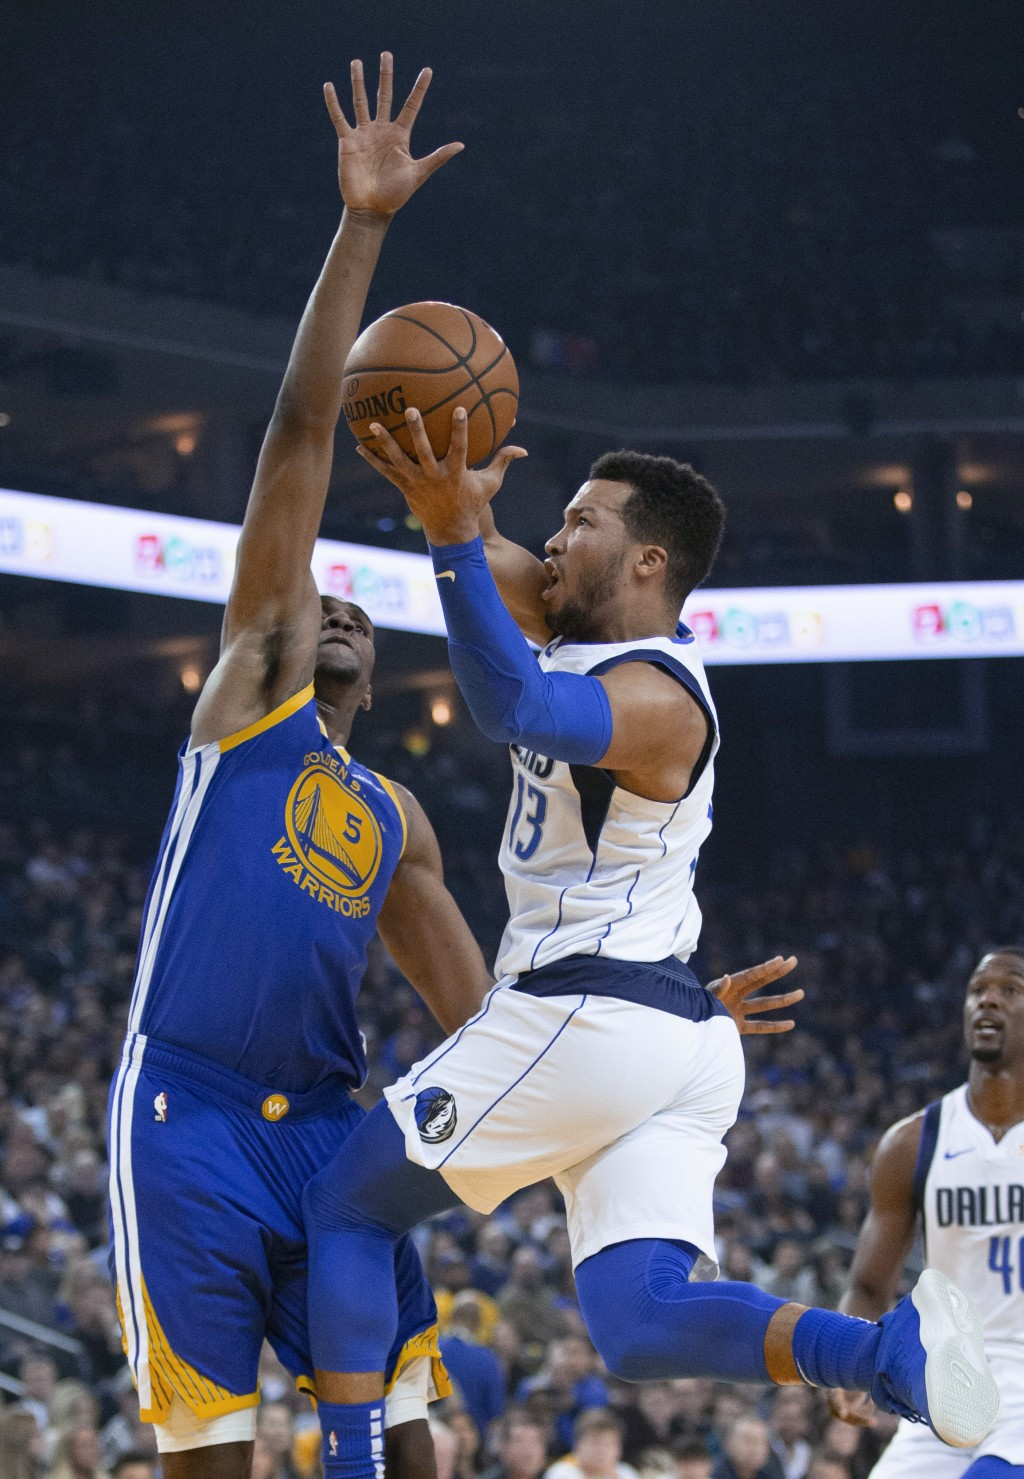 Dallas Mavericks' Jalen Brunson (13) is fouled by Golden State Warriors' Kevon Looney (5) as he drives to the basket during the first quarter of an NB...